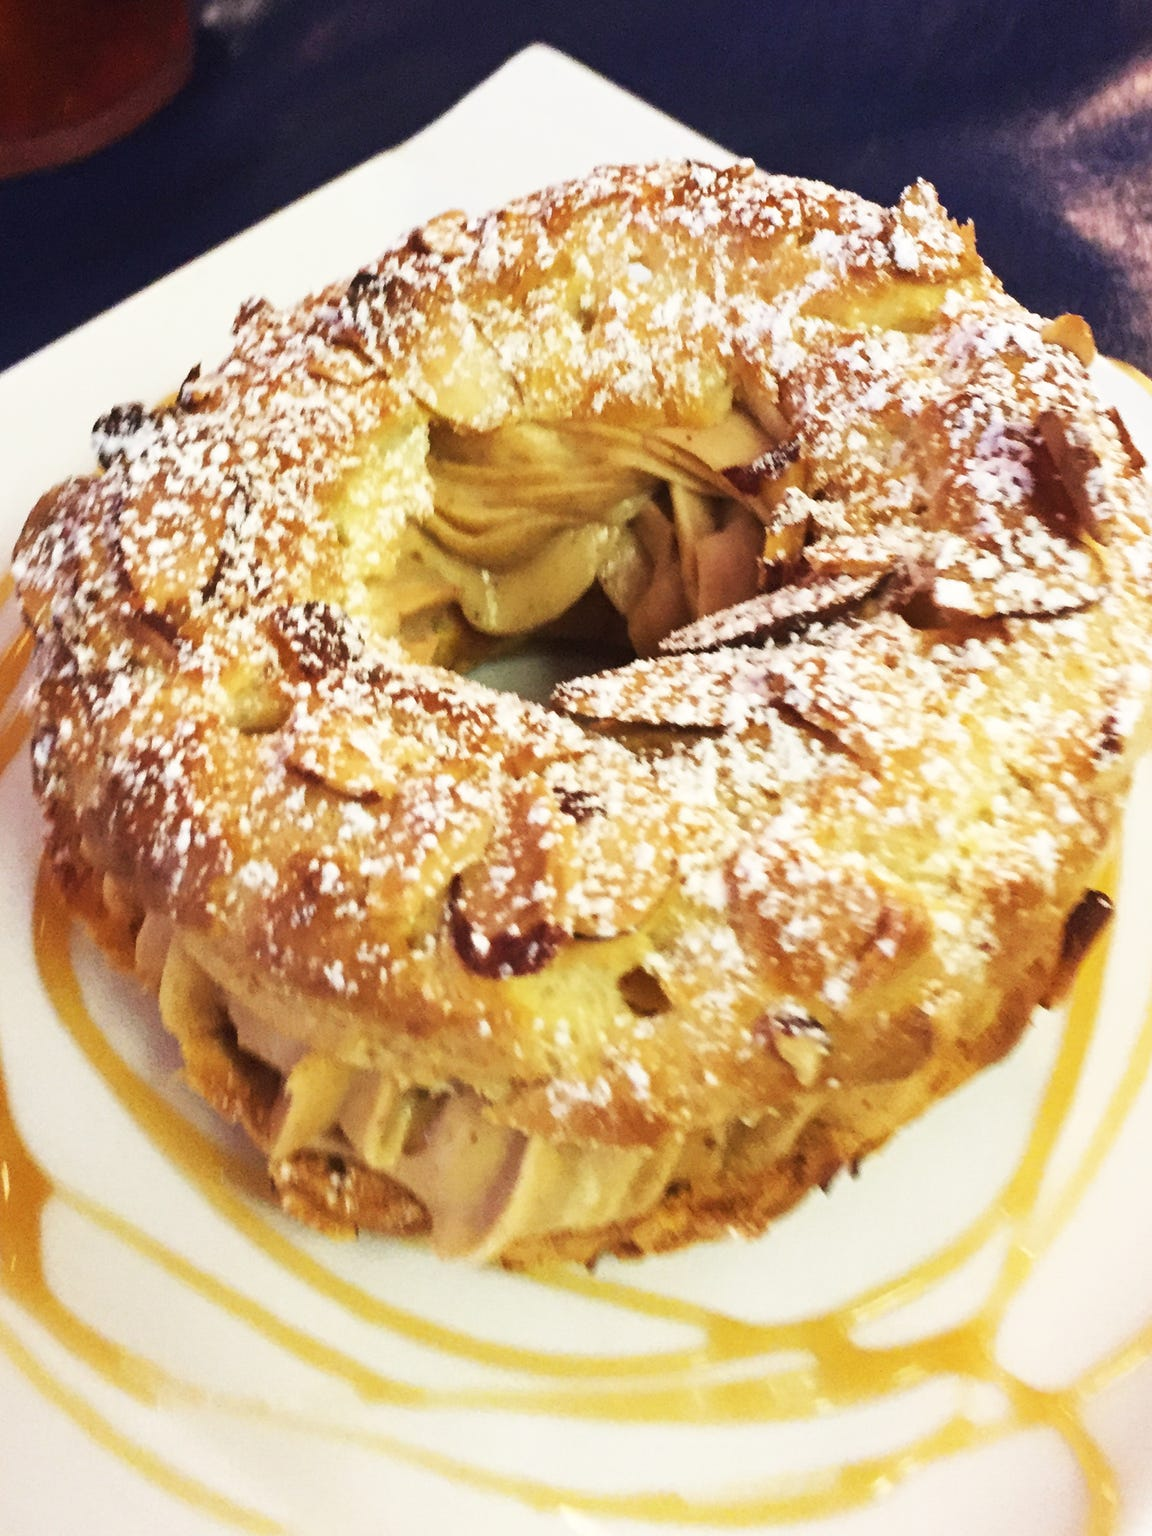 The Paris-Brest ($4) is a pastry filled with hazelnut